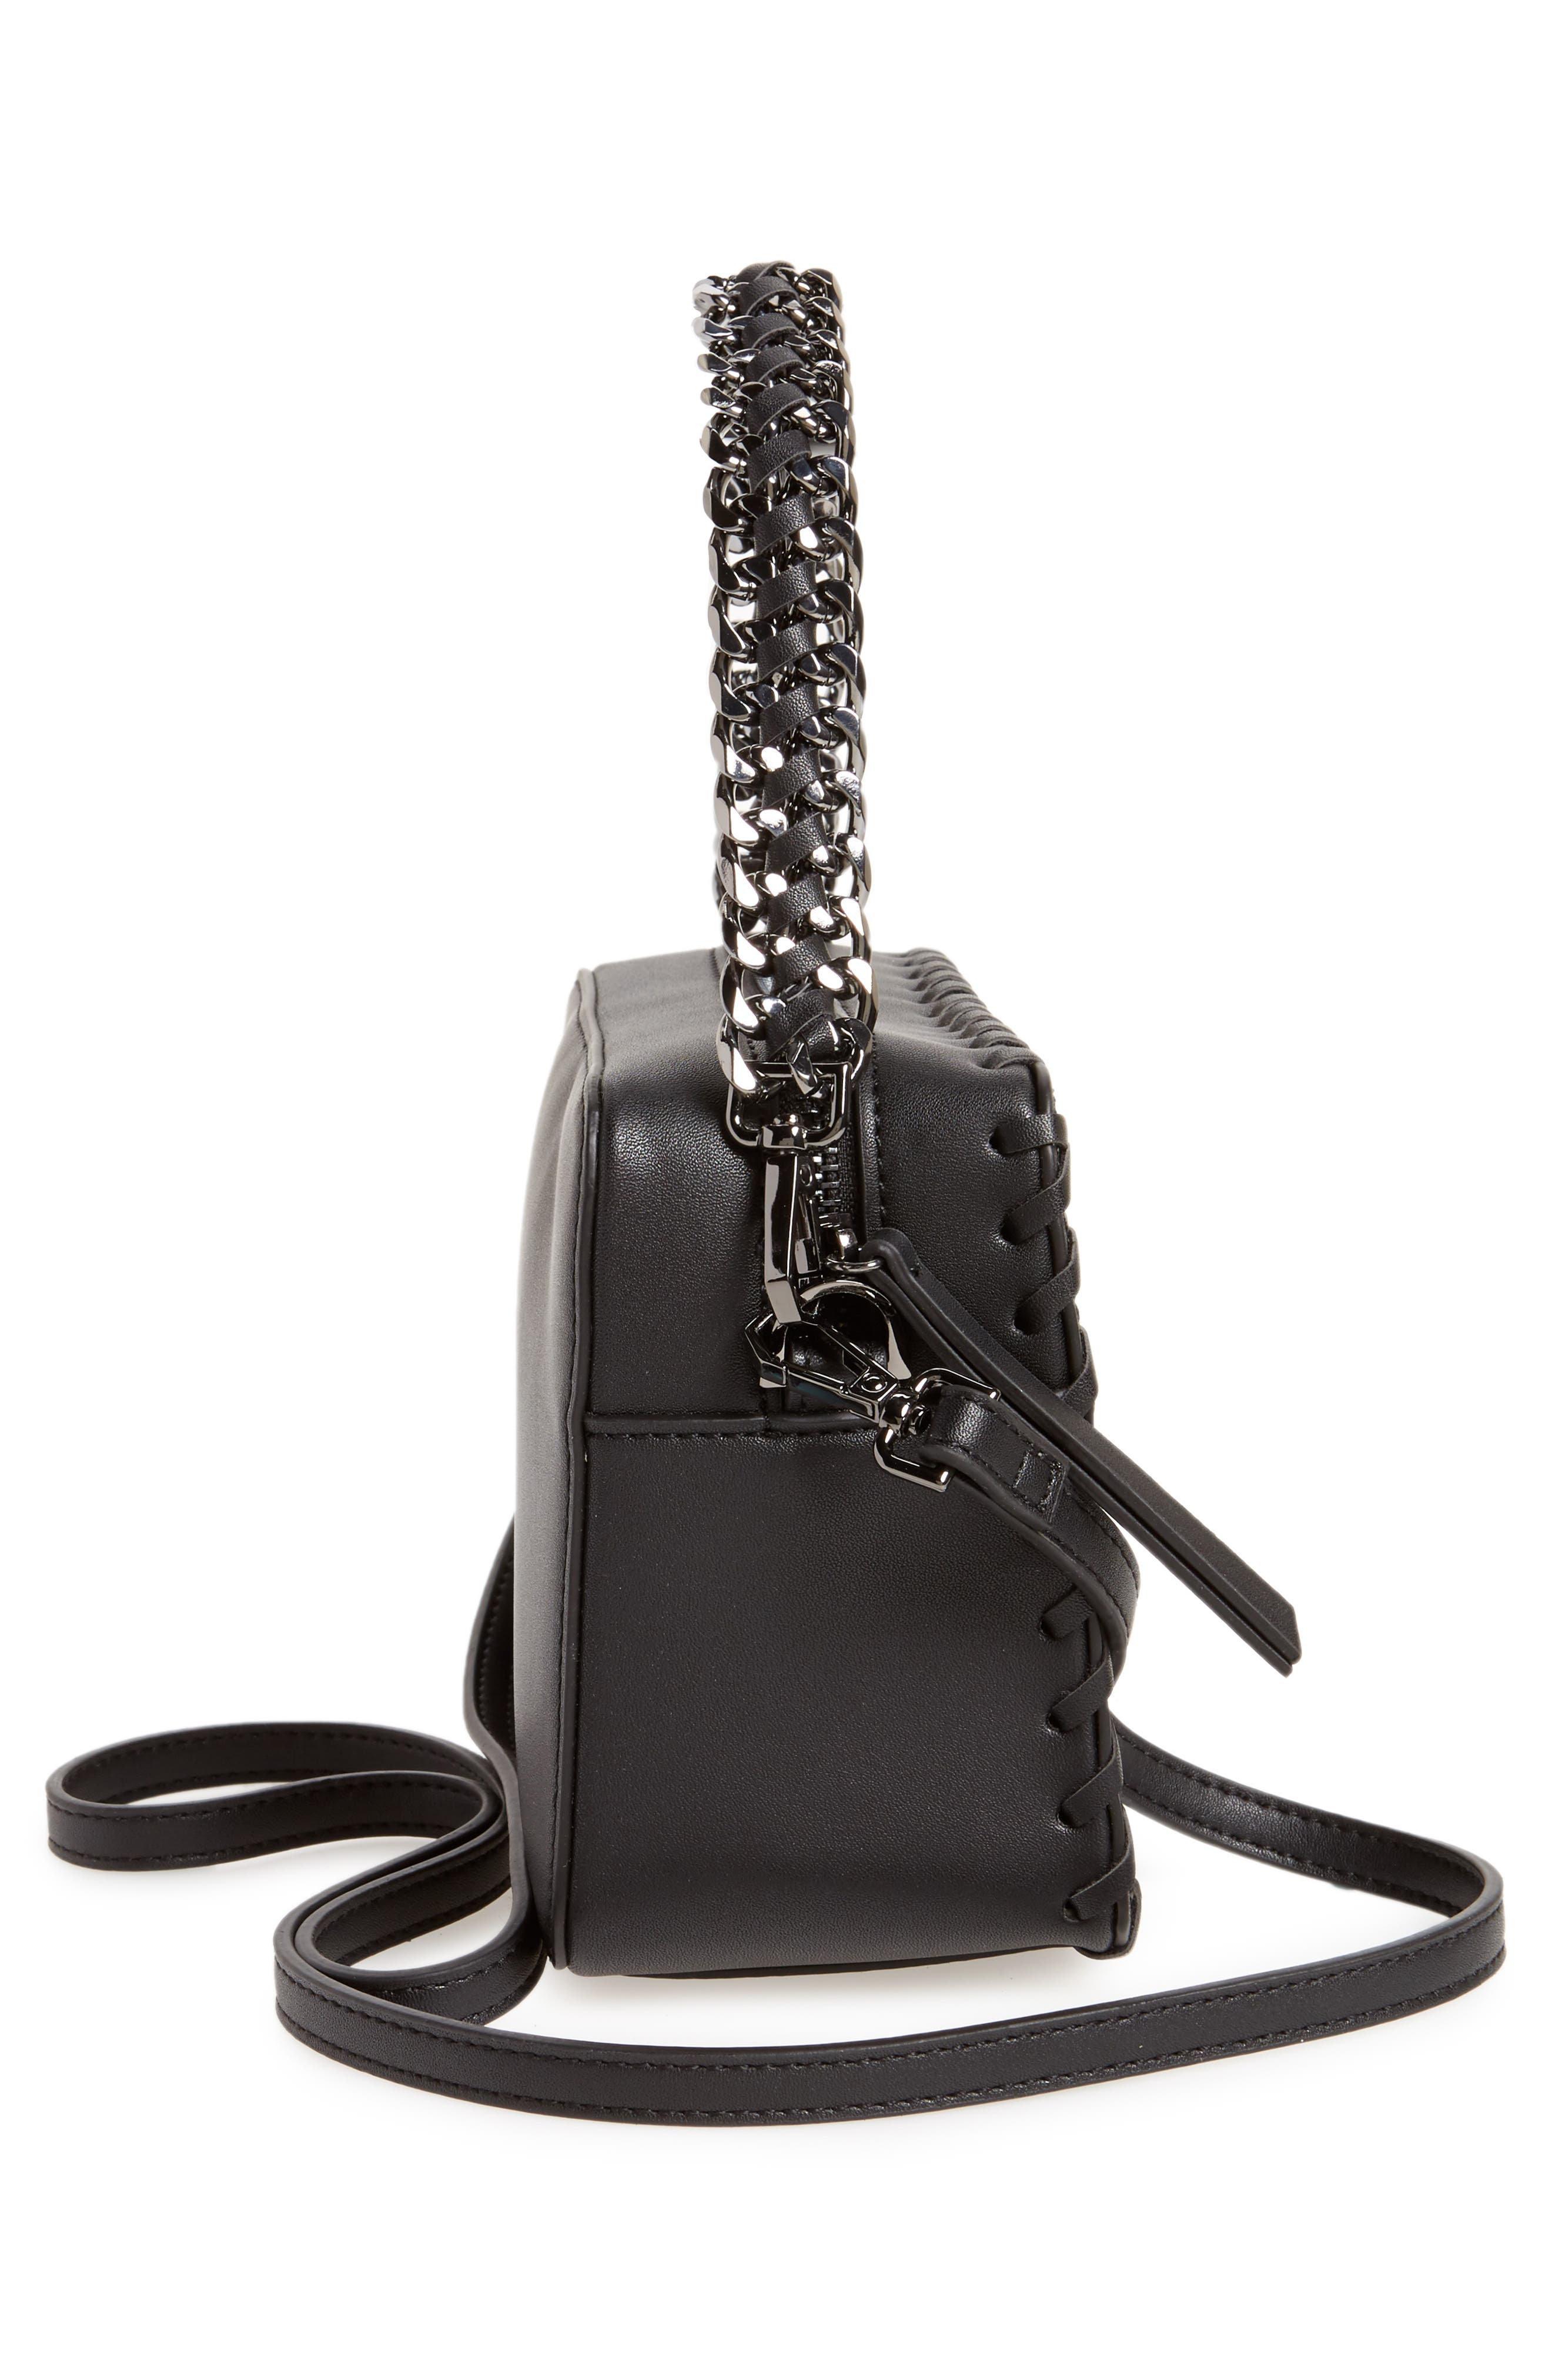 Rogue Whipstitch Faux Leather Crossbody Bag,                             Alternate thumbnail 5, color,                             001